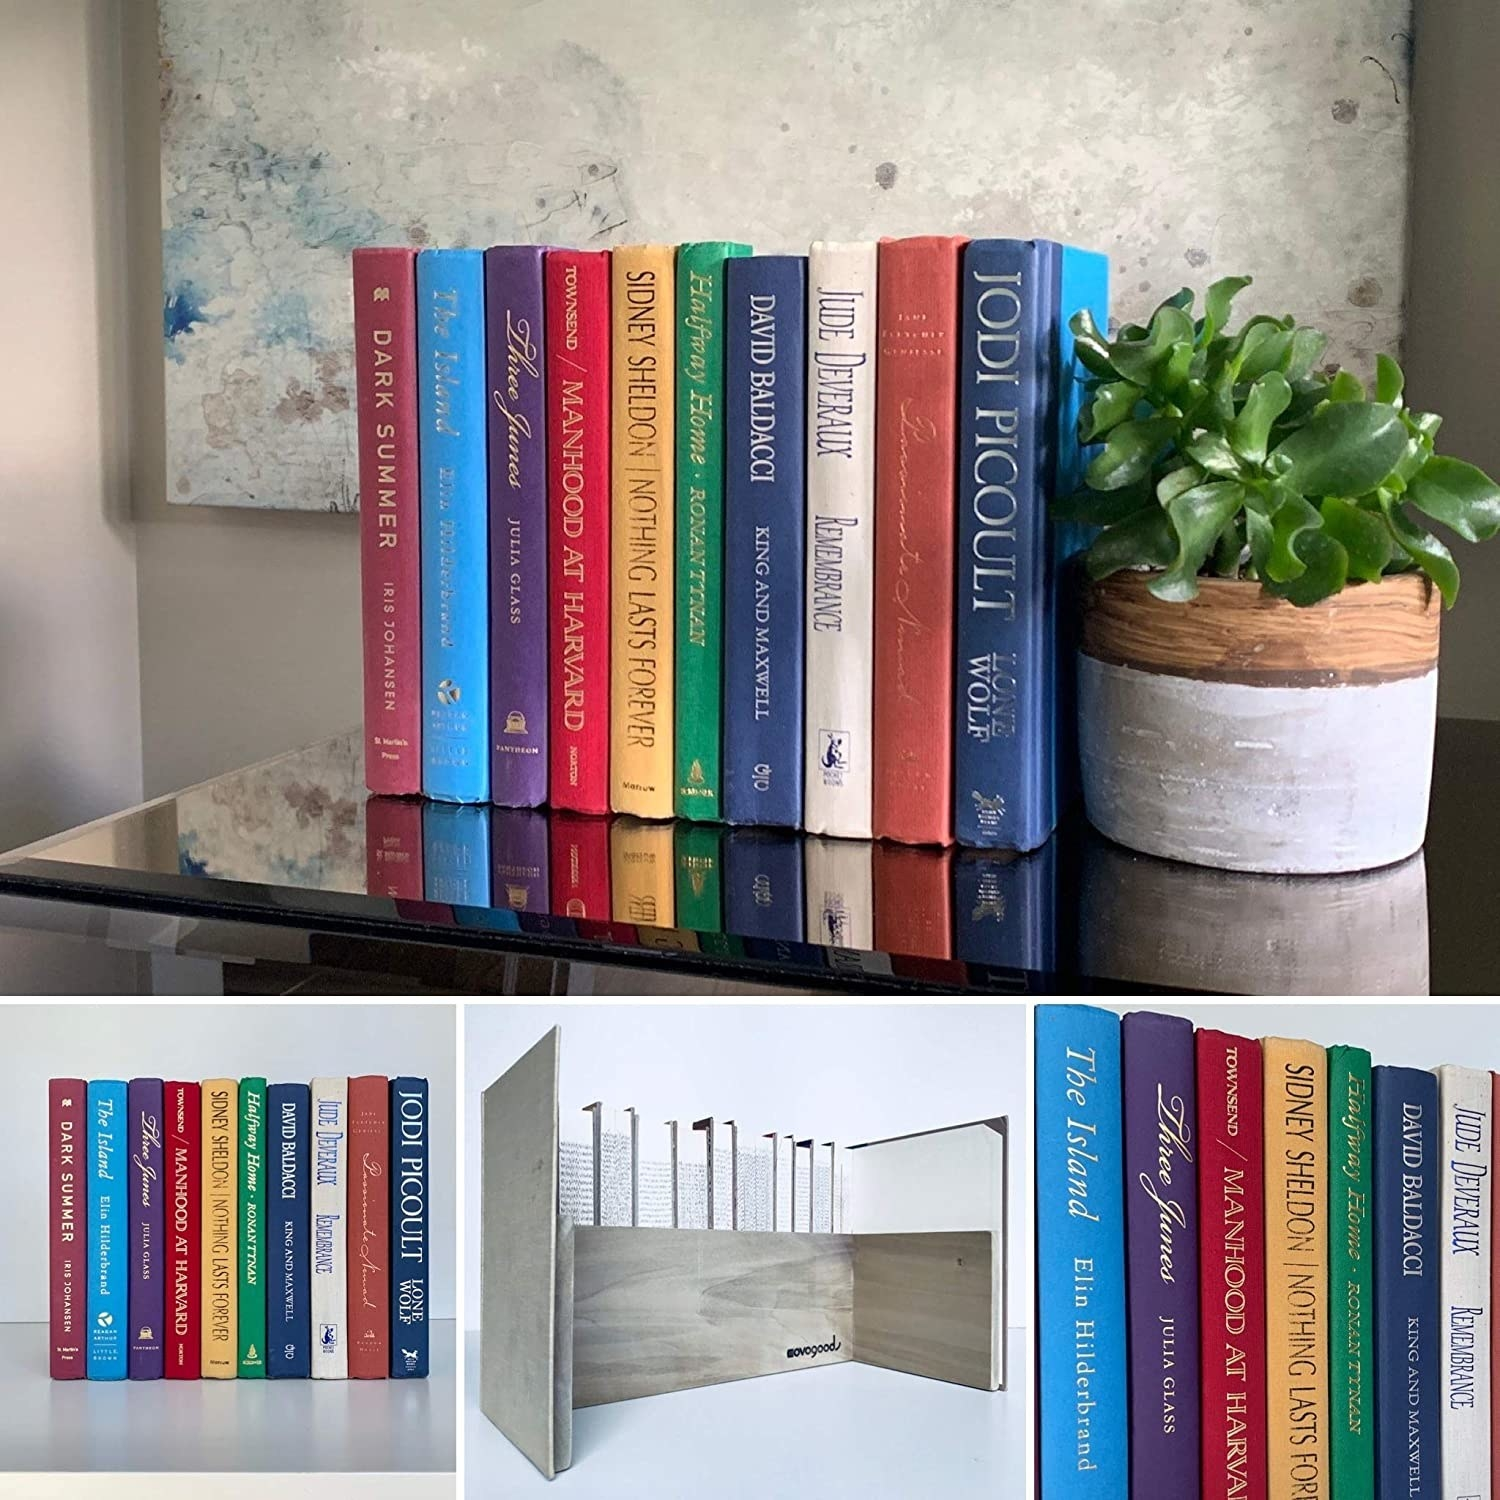 Four photos which show how from the front, the display looks like a stack of books but from the back it's actually empty